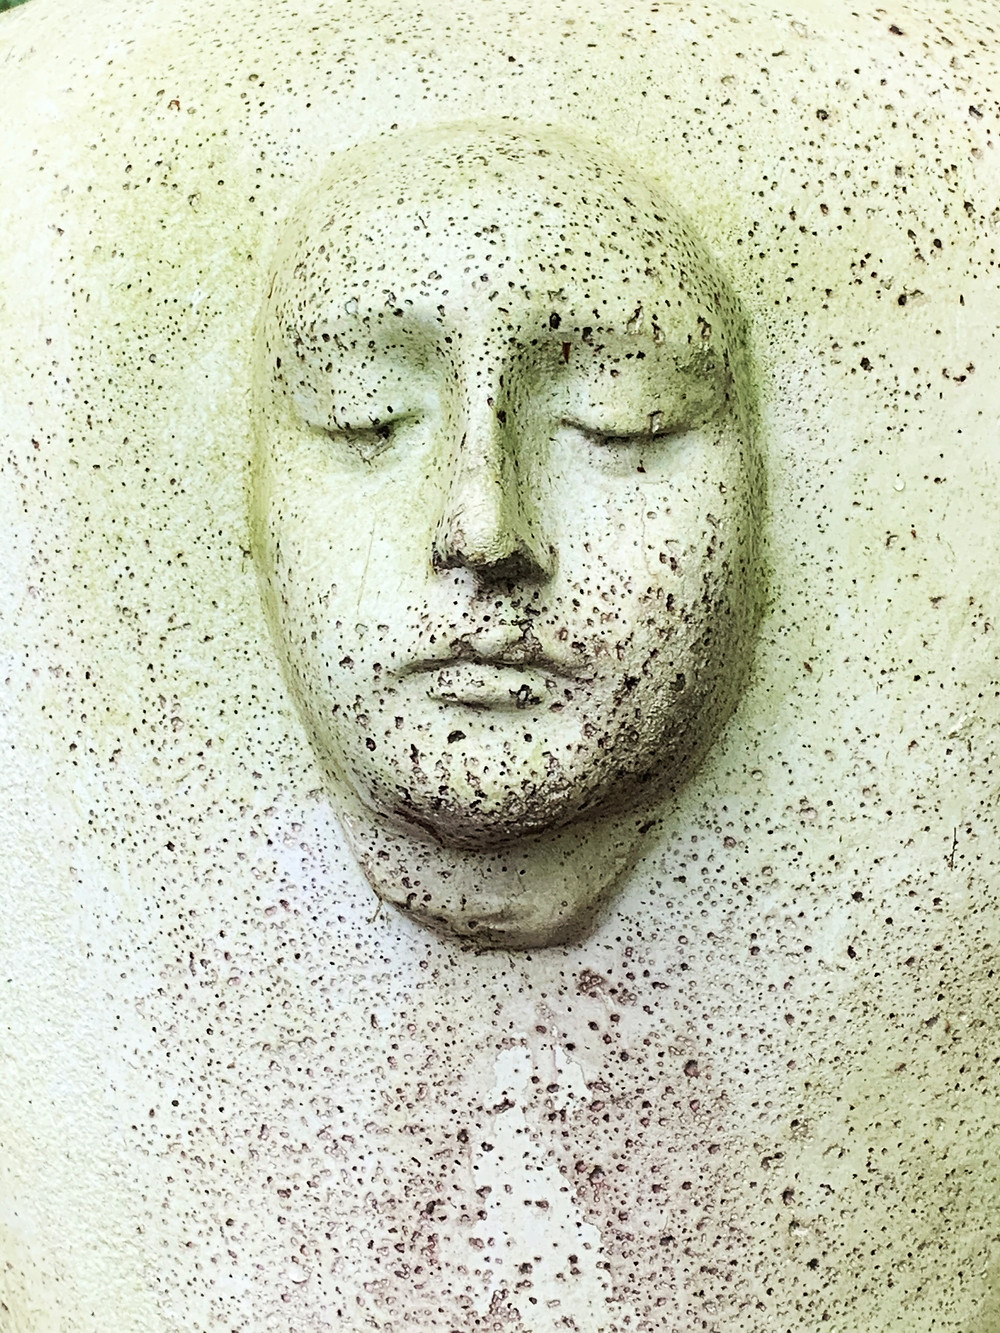 Plaster casting of person, by Jan Canty